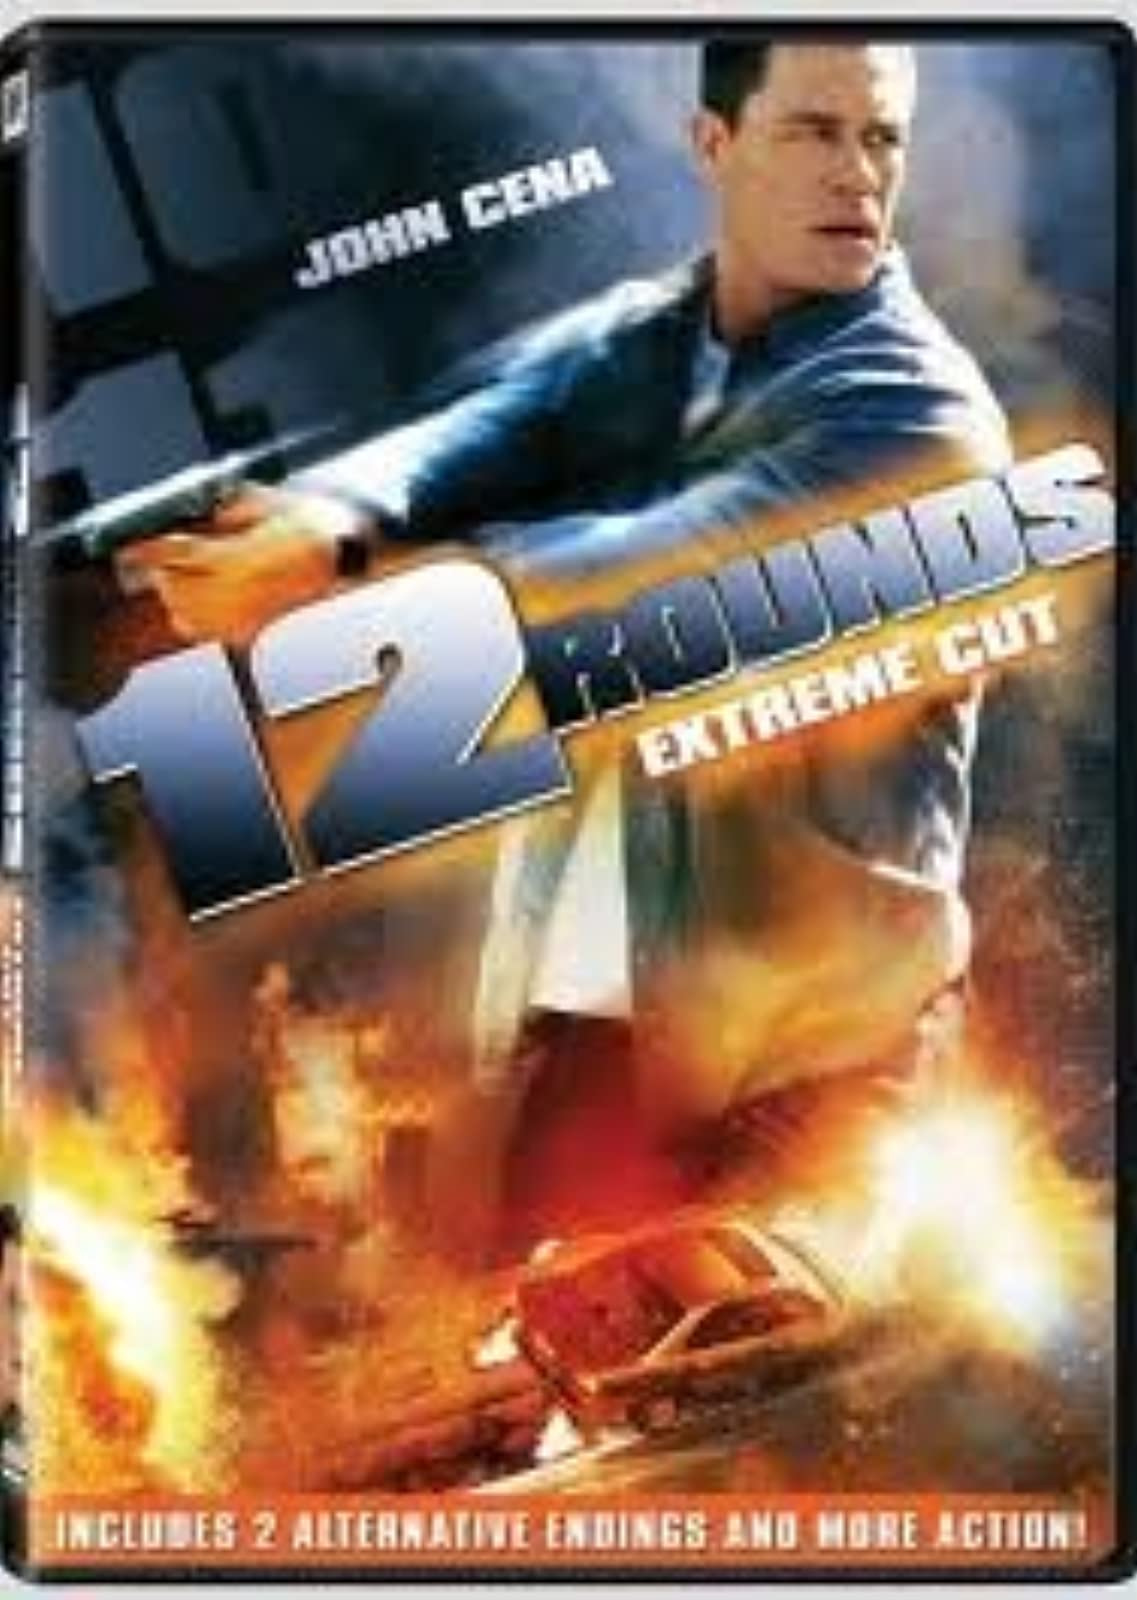 12 Rounds Extreme Cut On DVD